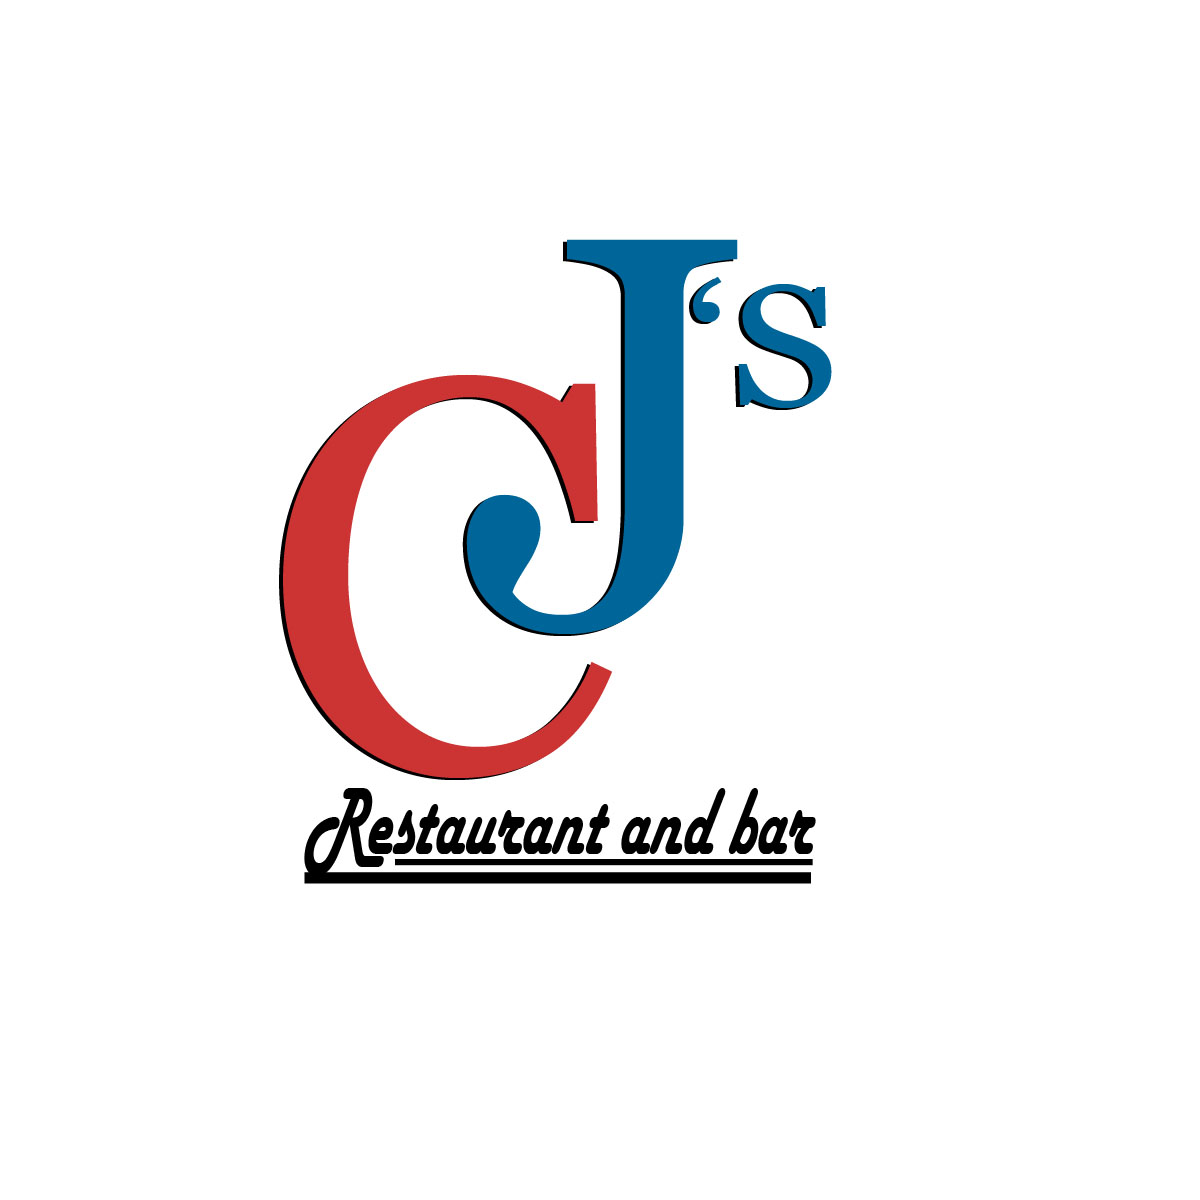 Logo Design by Moag - Entry No. 12 in the Logo Design Contest Inspiring Logo Design for Cj's.